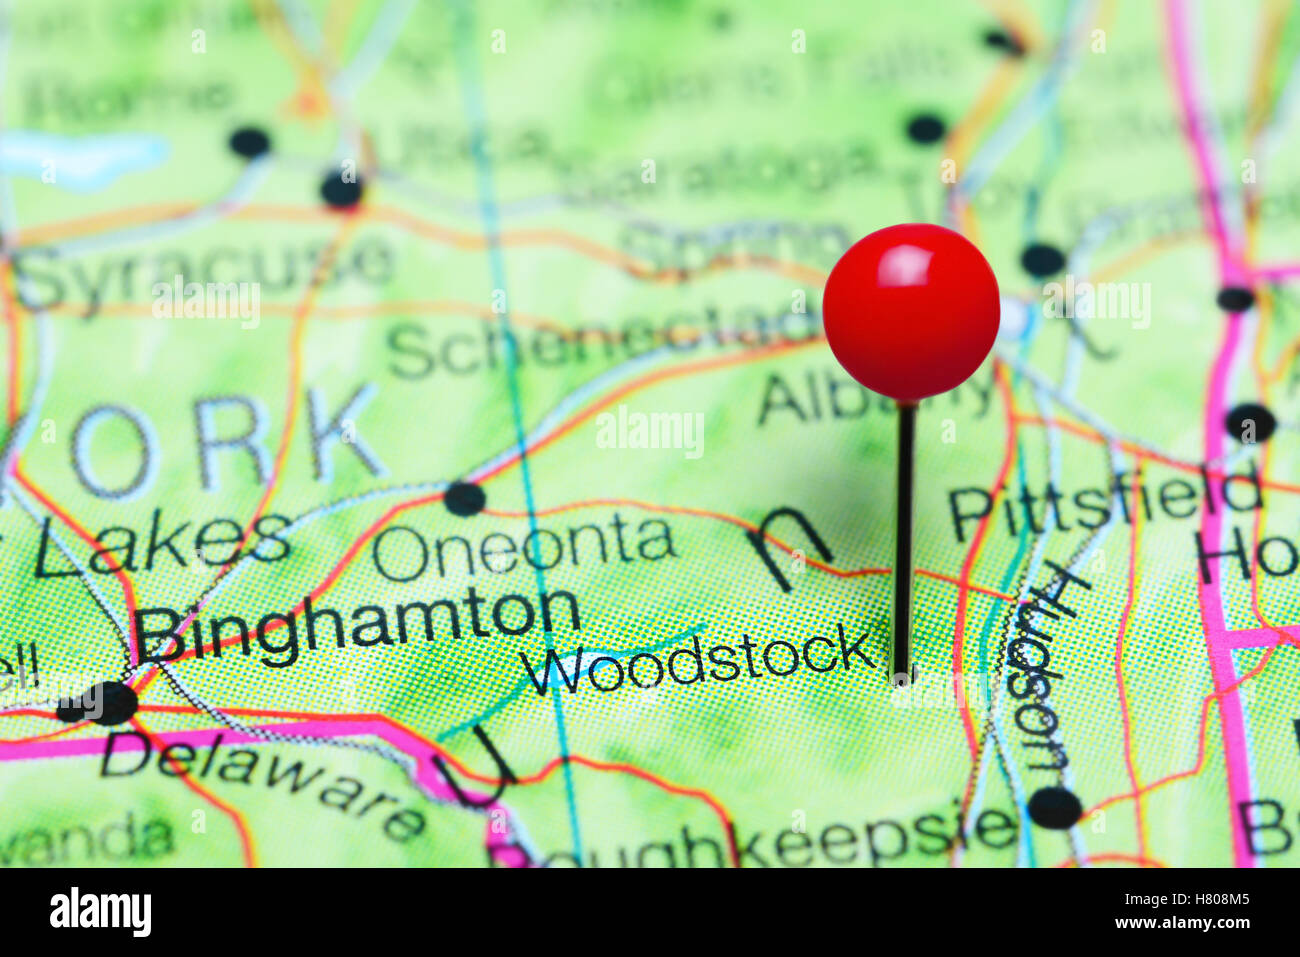 Map Of New York State Usa.Woodstock Pinned On A Map Of New York State Usa Stock Photo